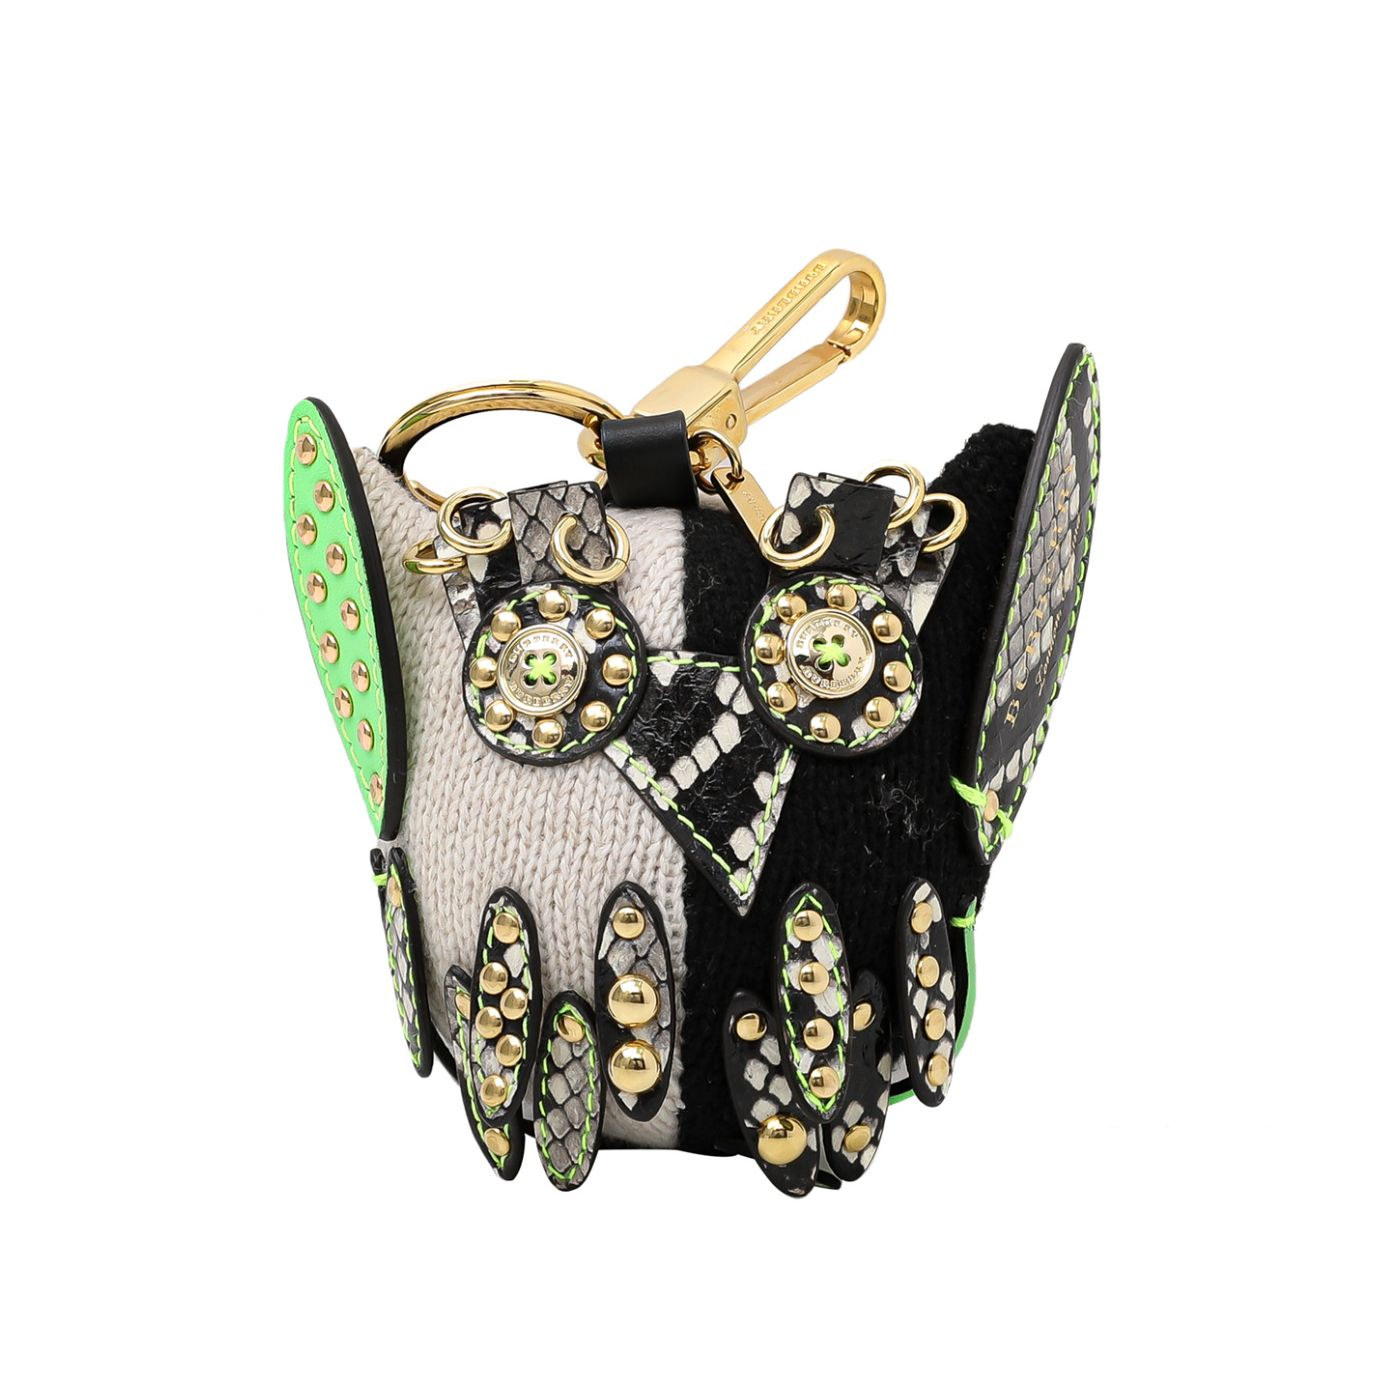 Burberry Tricolor Mavis The Owl Knit Bag Charm